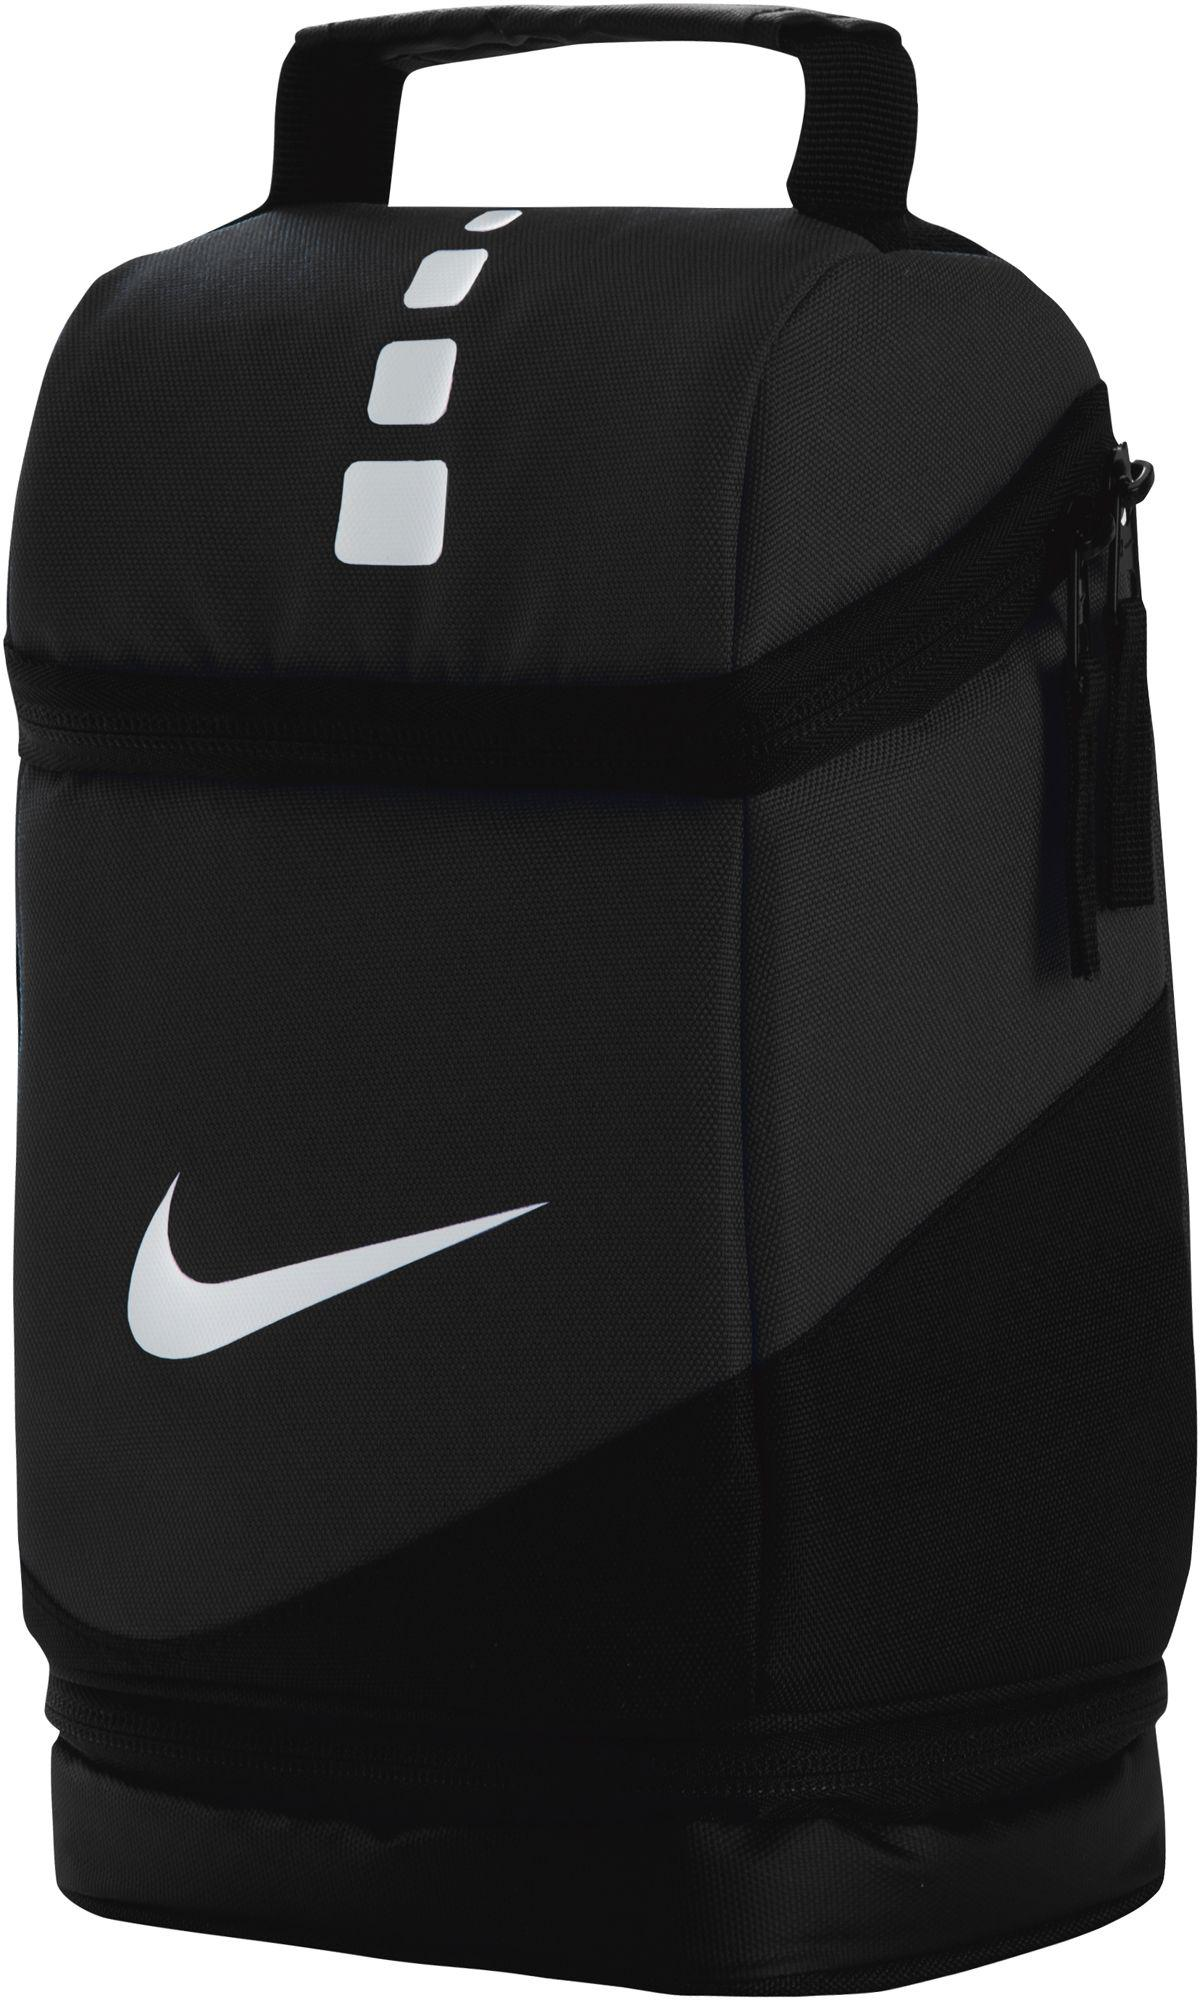 1c50fa648a Lyst - Nike Elite Fuel Pack Lunch Tote Bag in Black